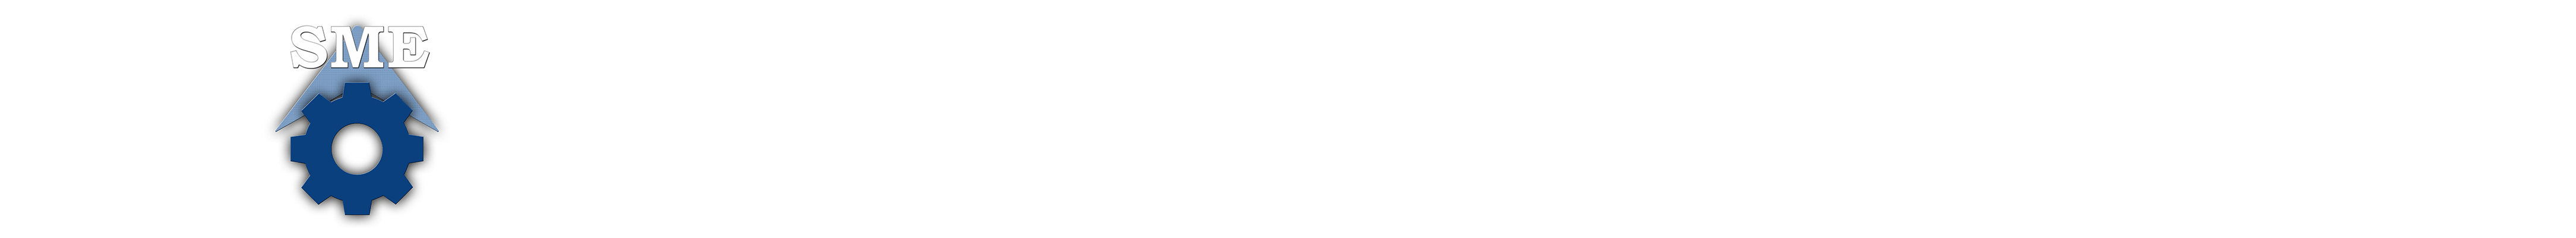 Journal of Manufacturing Engineering